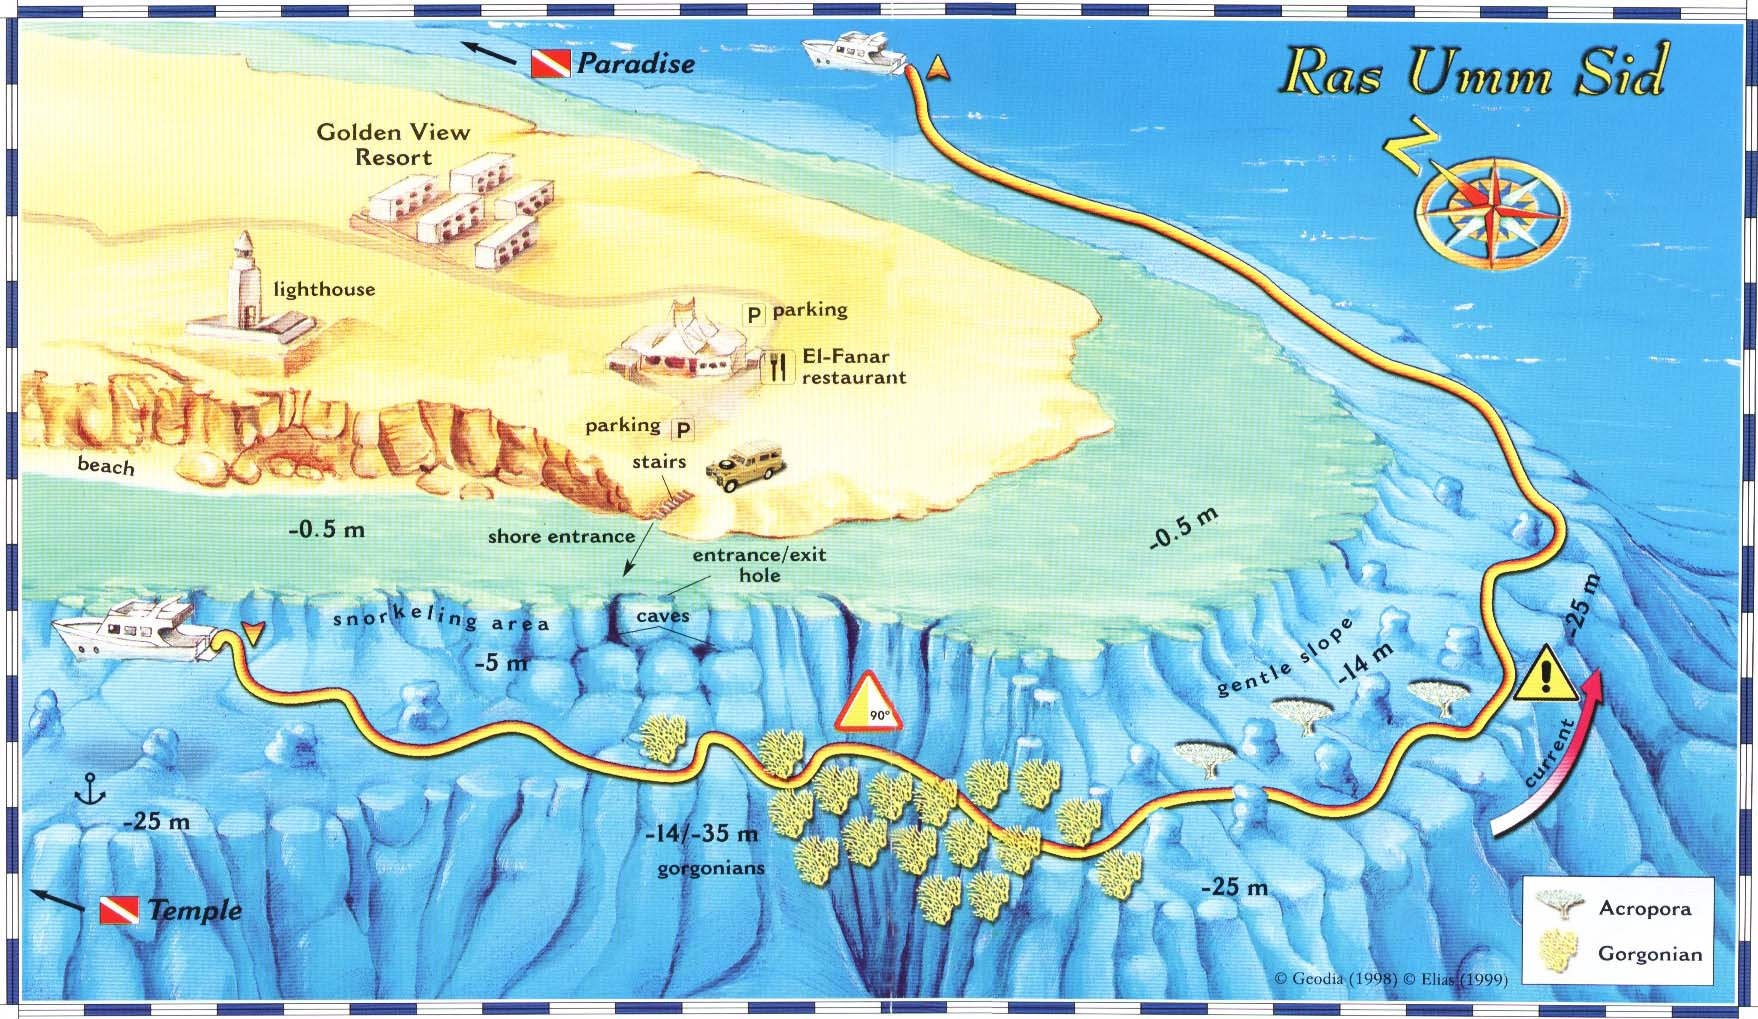 scuba dive in sharm el sheikh with  star padi diving centers in  - ras umm sidd diving site map